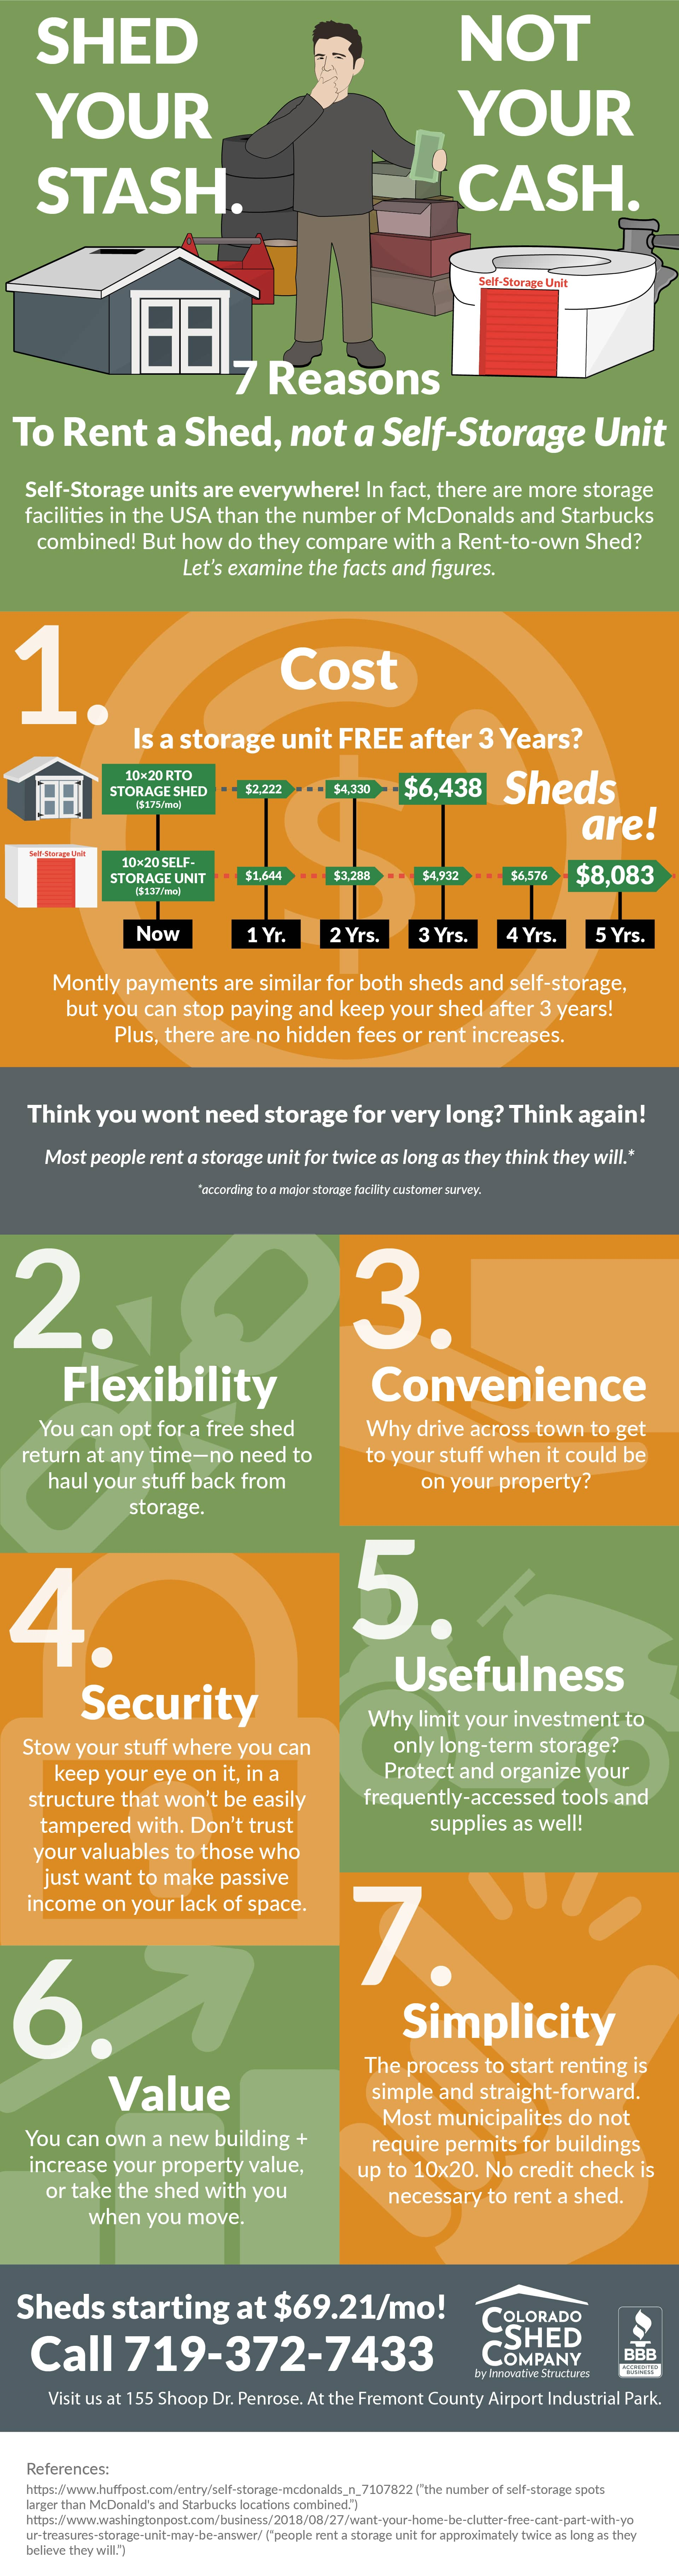 infographic about rent to own sheds